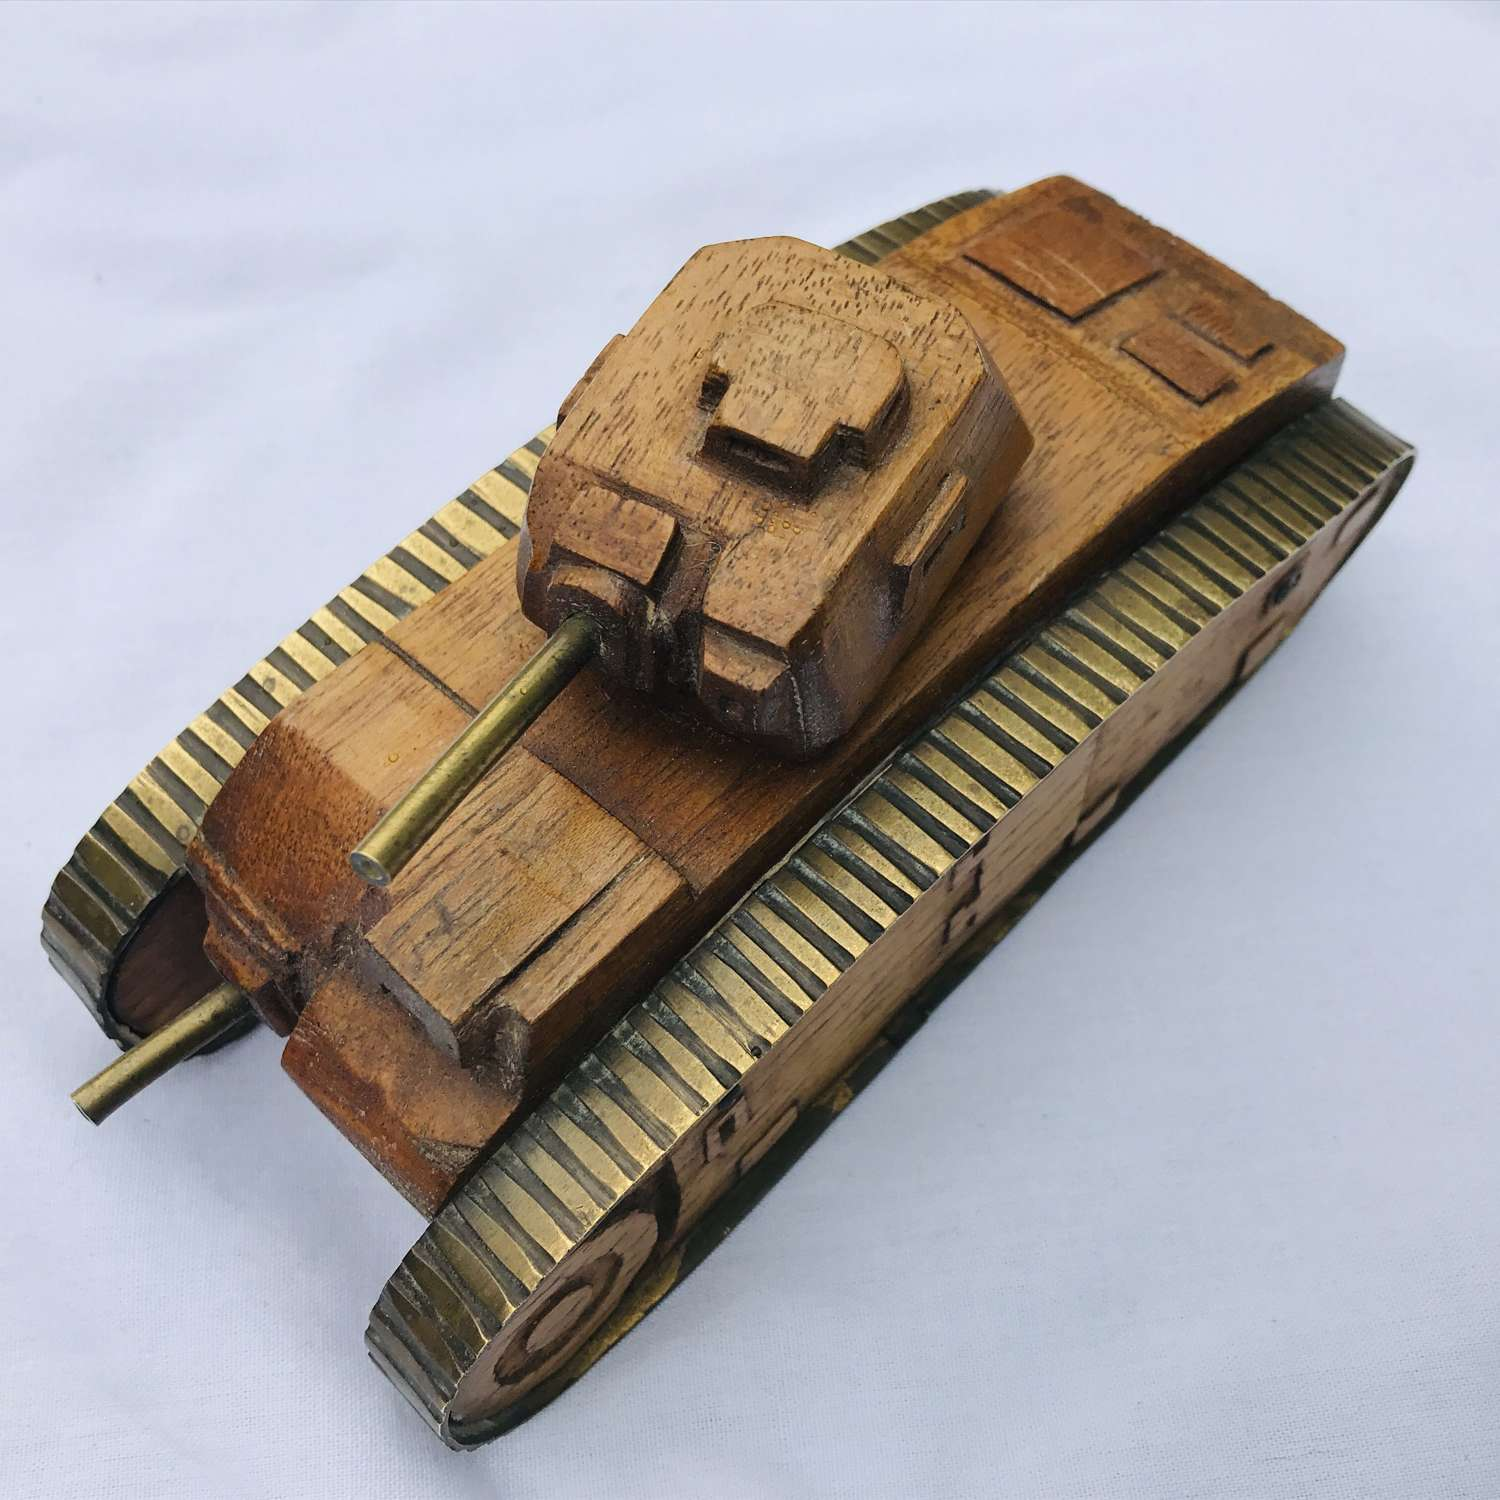 French Char B wooden model tank